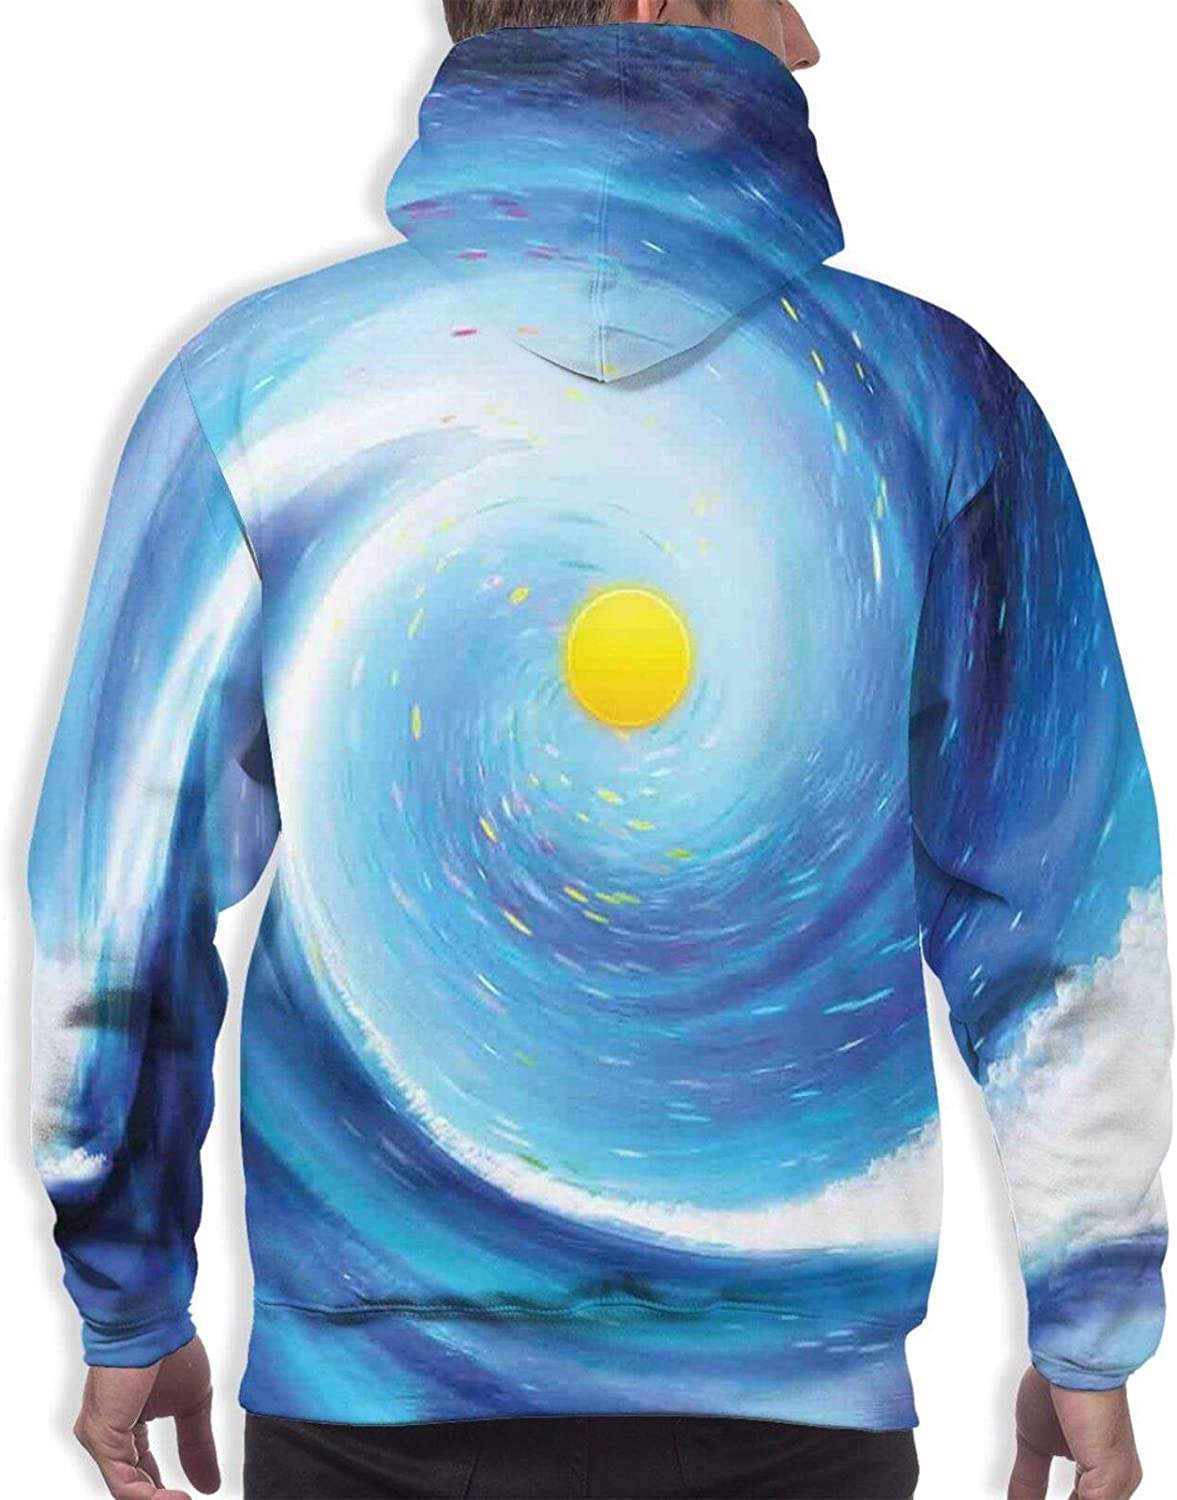 Men's Hoodies Sweatshirts,Artistic Spring Flowers On Blue Backdrop Ditsy Style Nature Inspired Simplistic Blooms